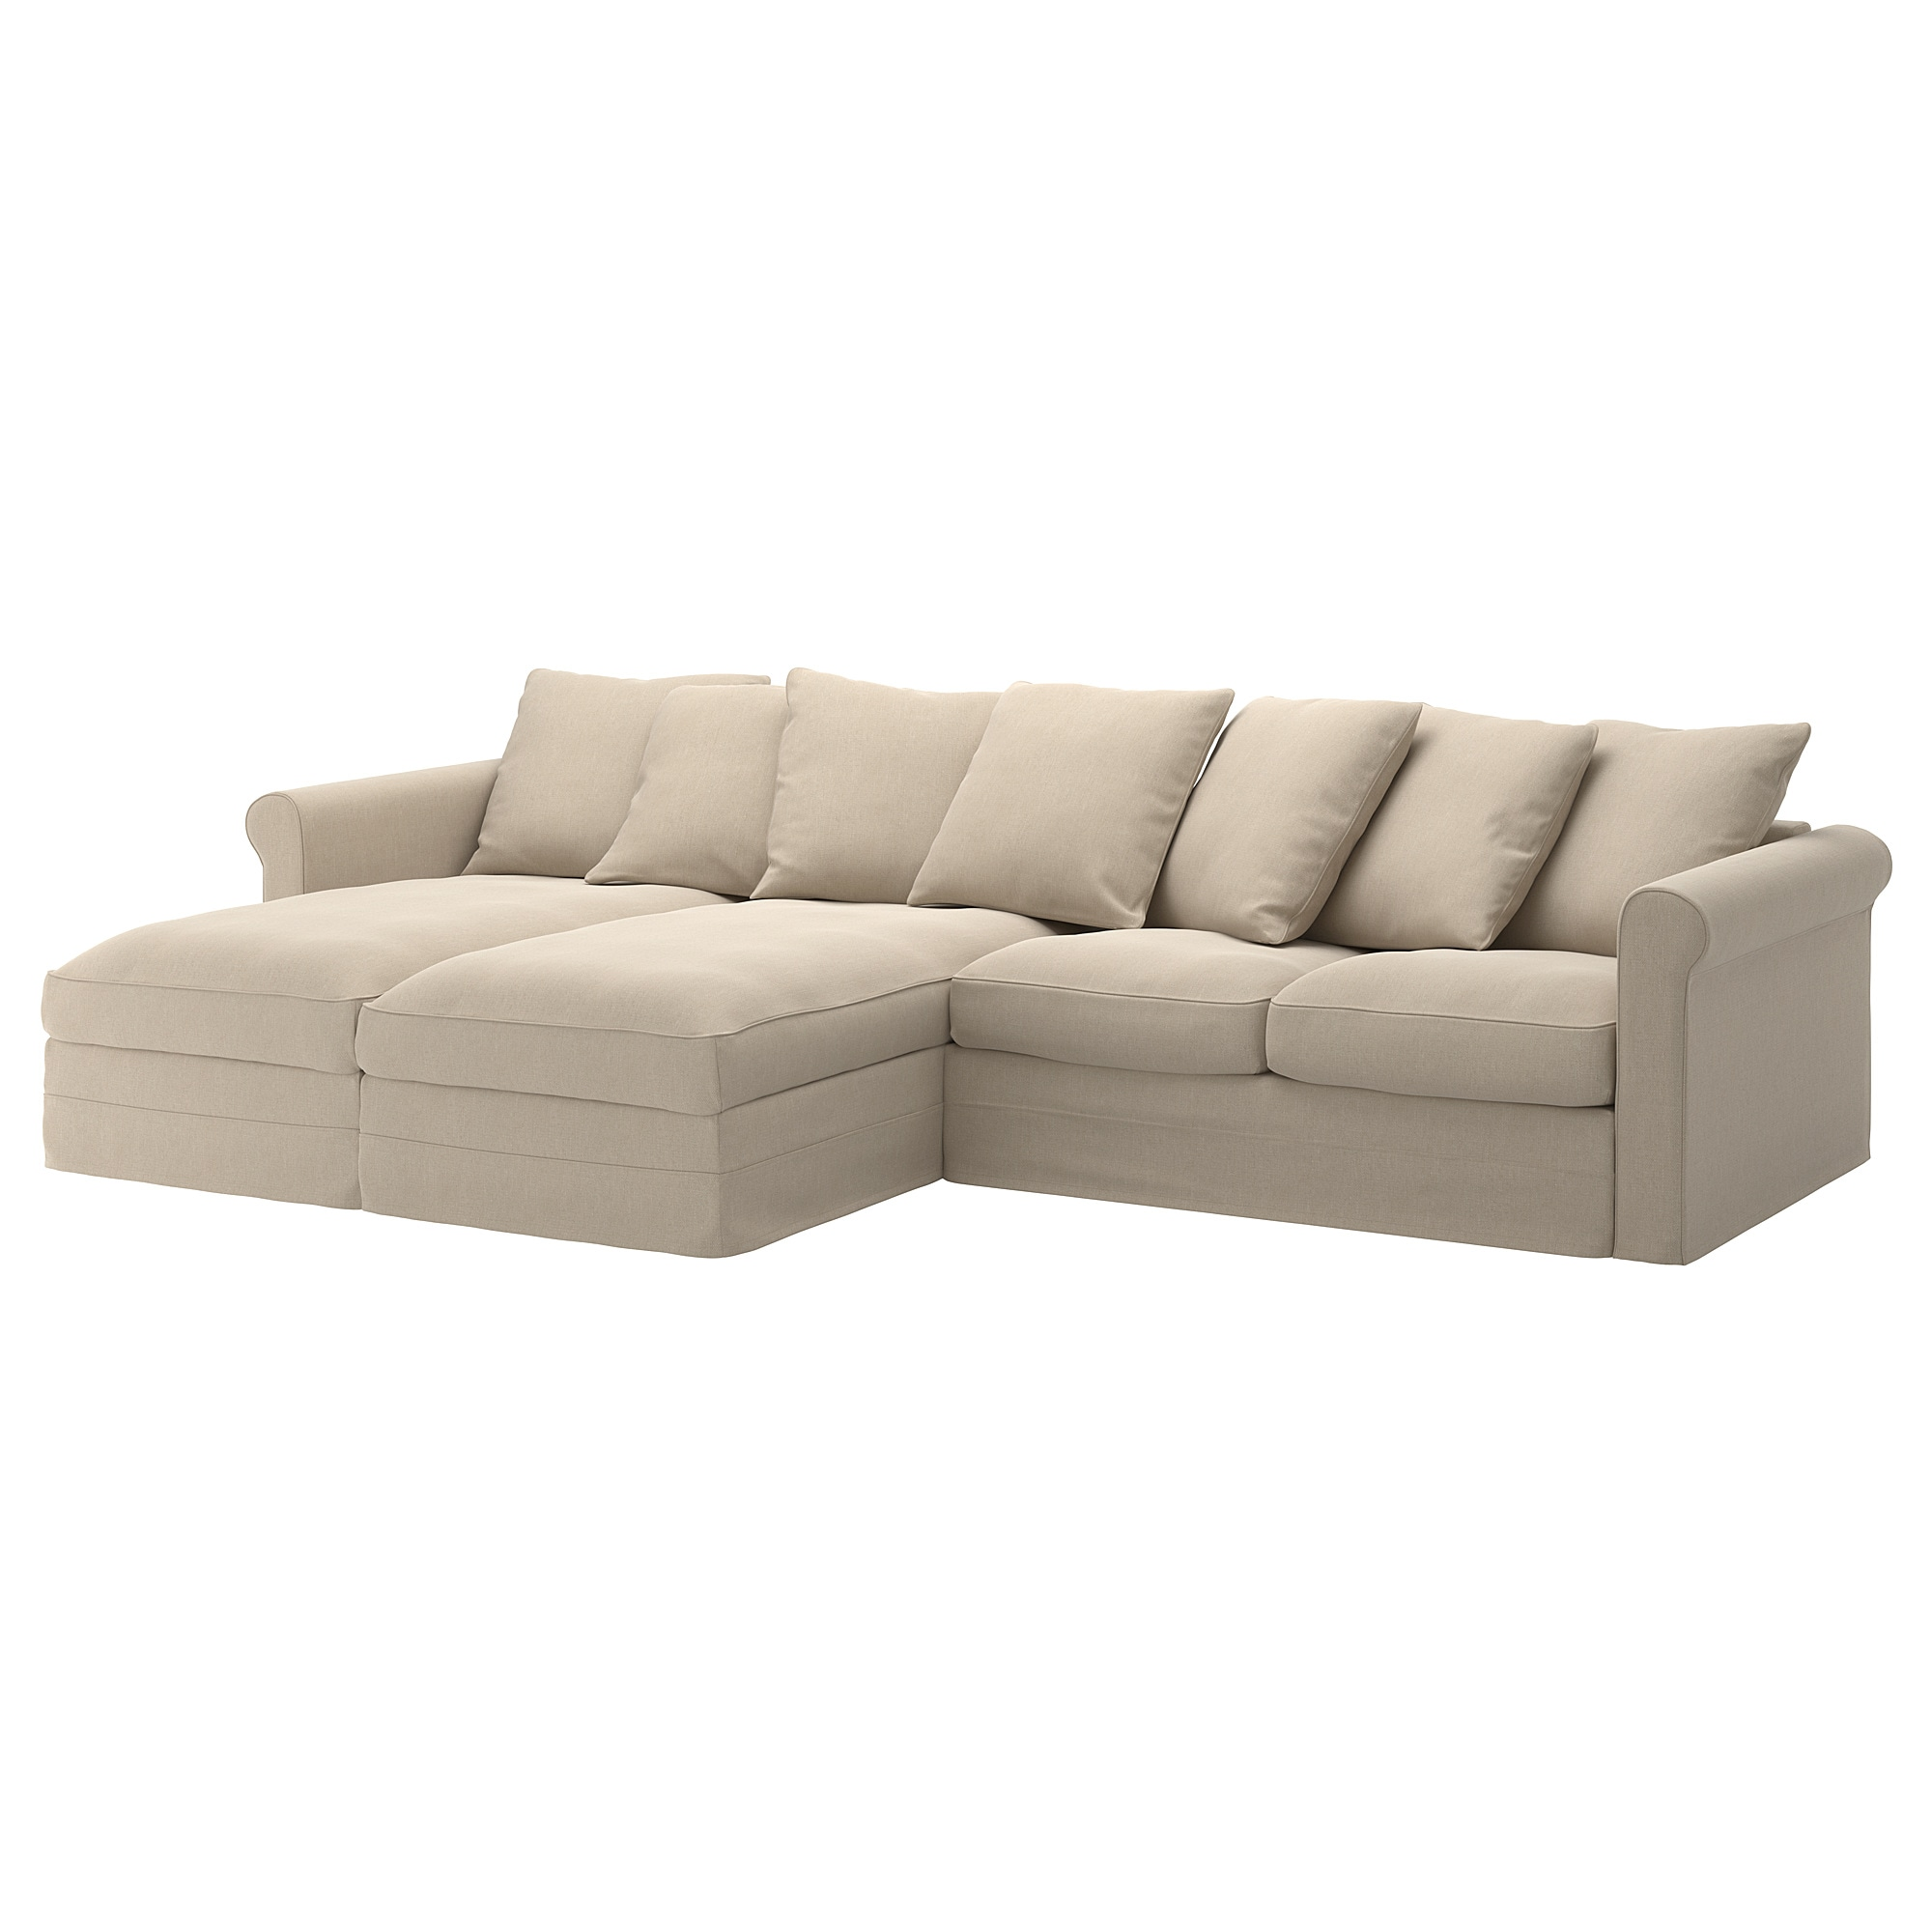 GrÖnlid 4 Seat Sofa With Chaise Longues Sporda Natural